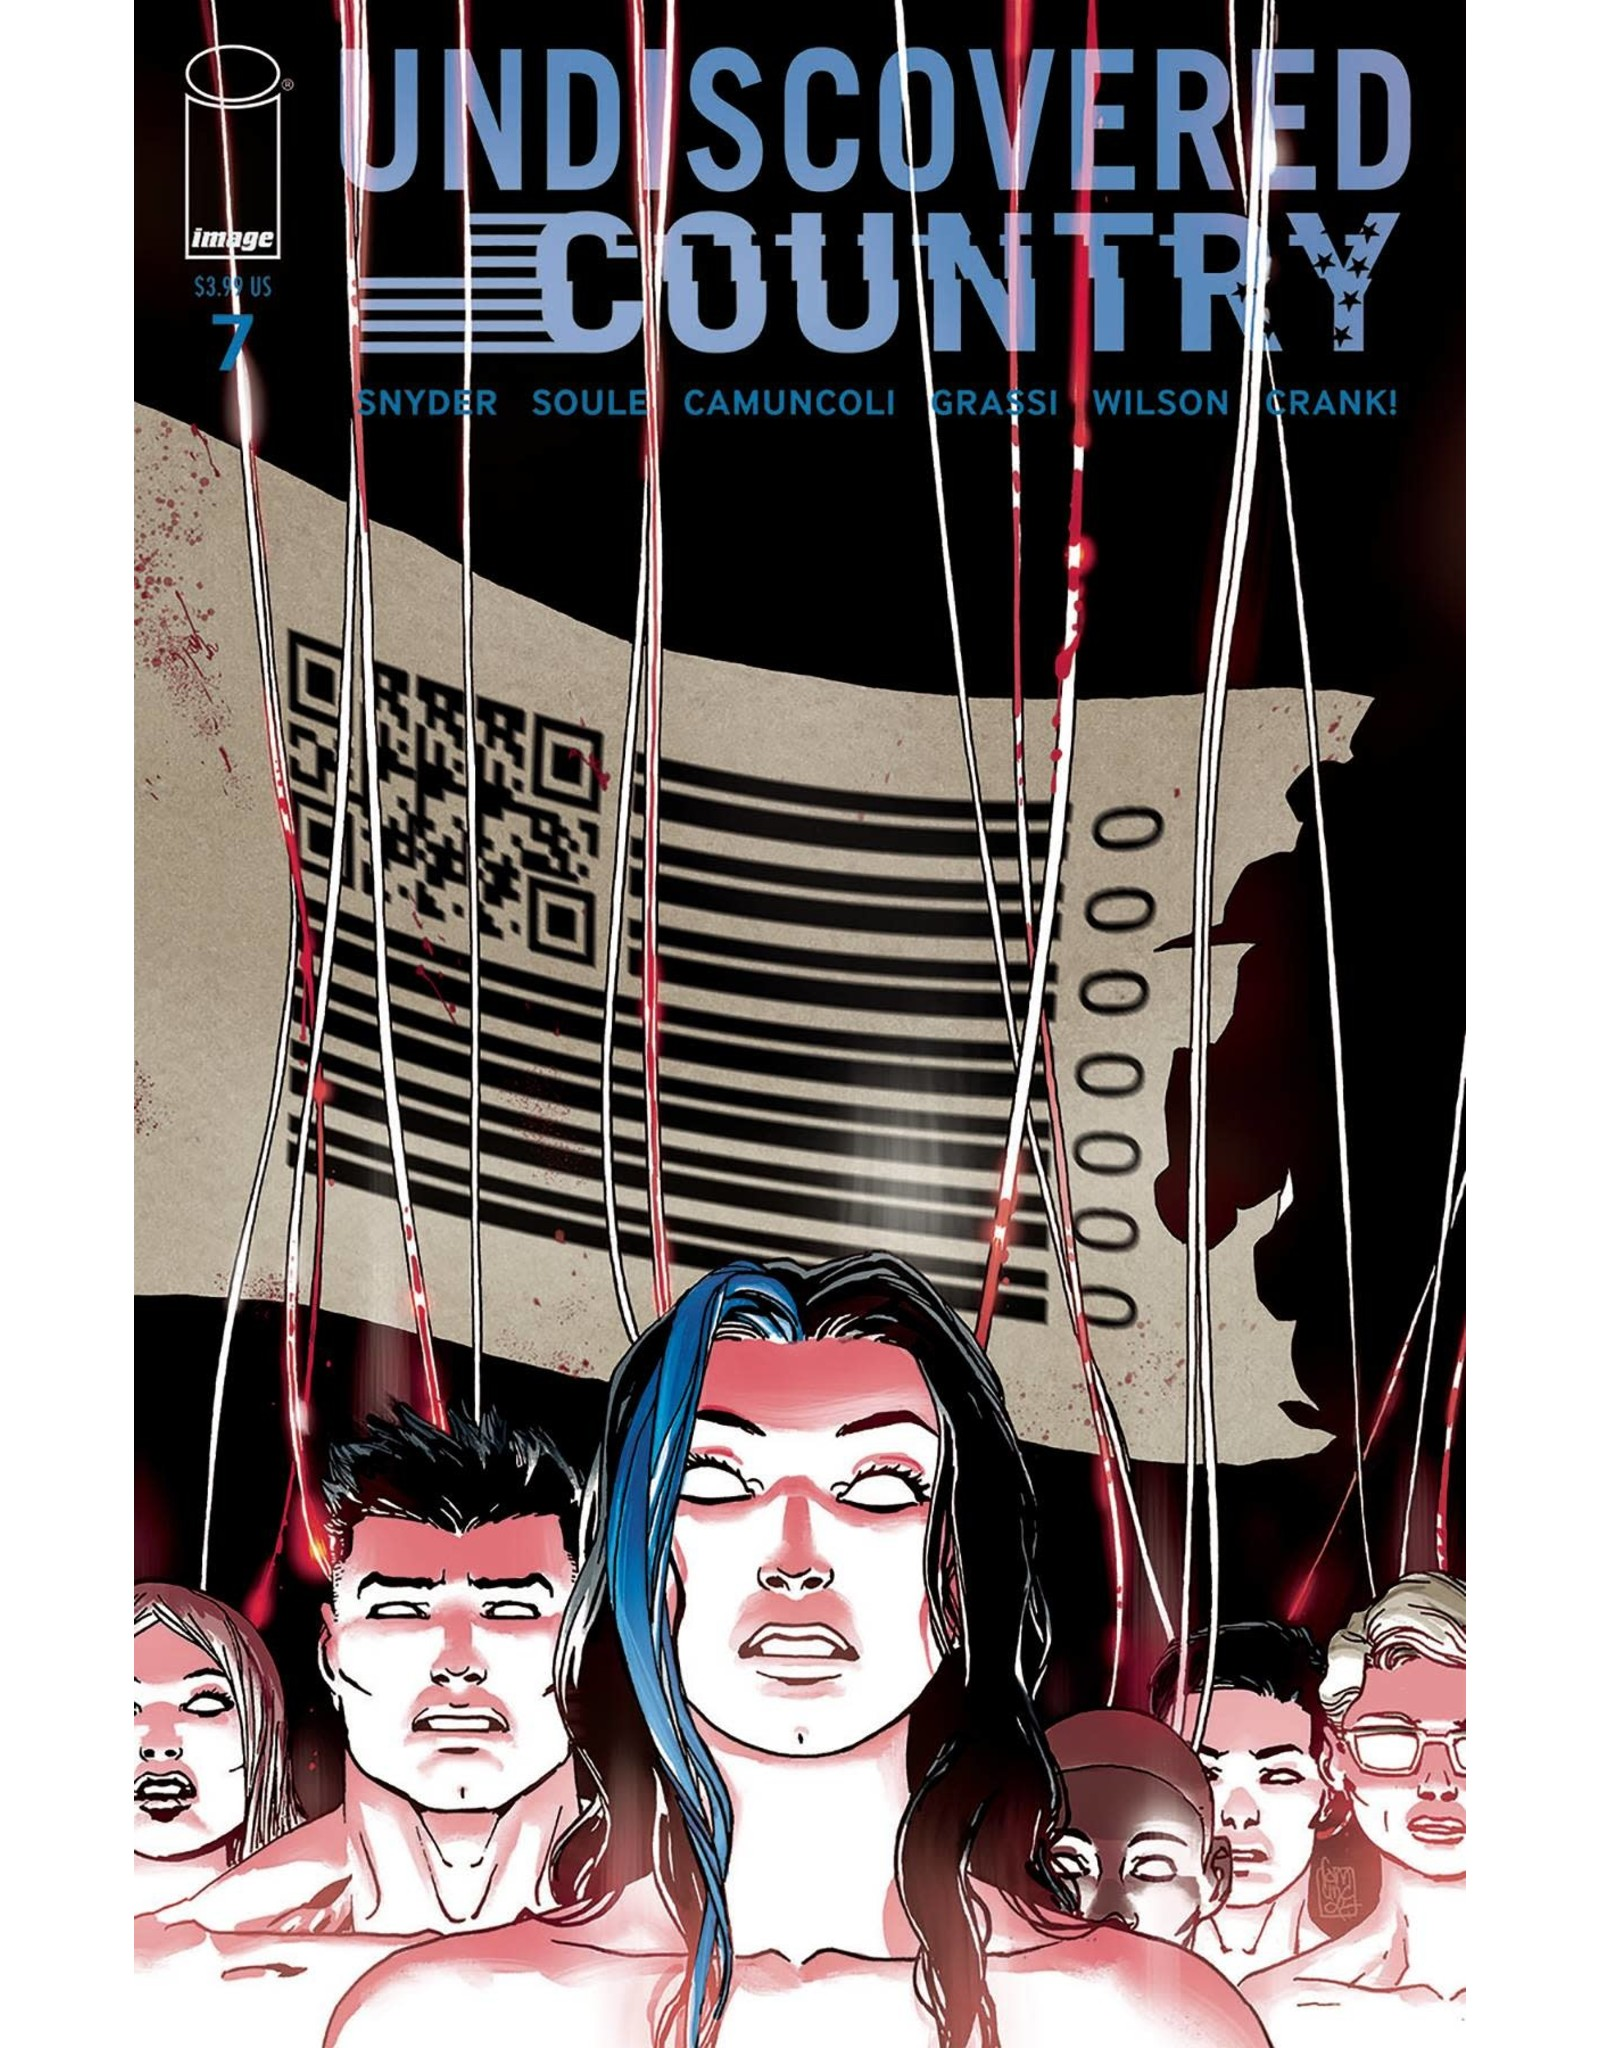 Image Comics UNDISCOVERED COUNTRY #7 CVR A CAMUNCOLI (MR)